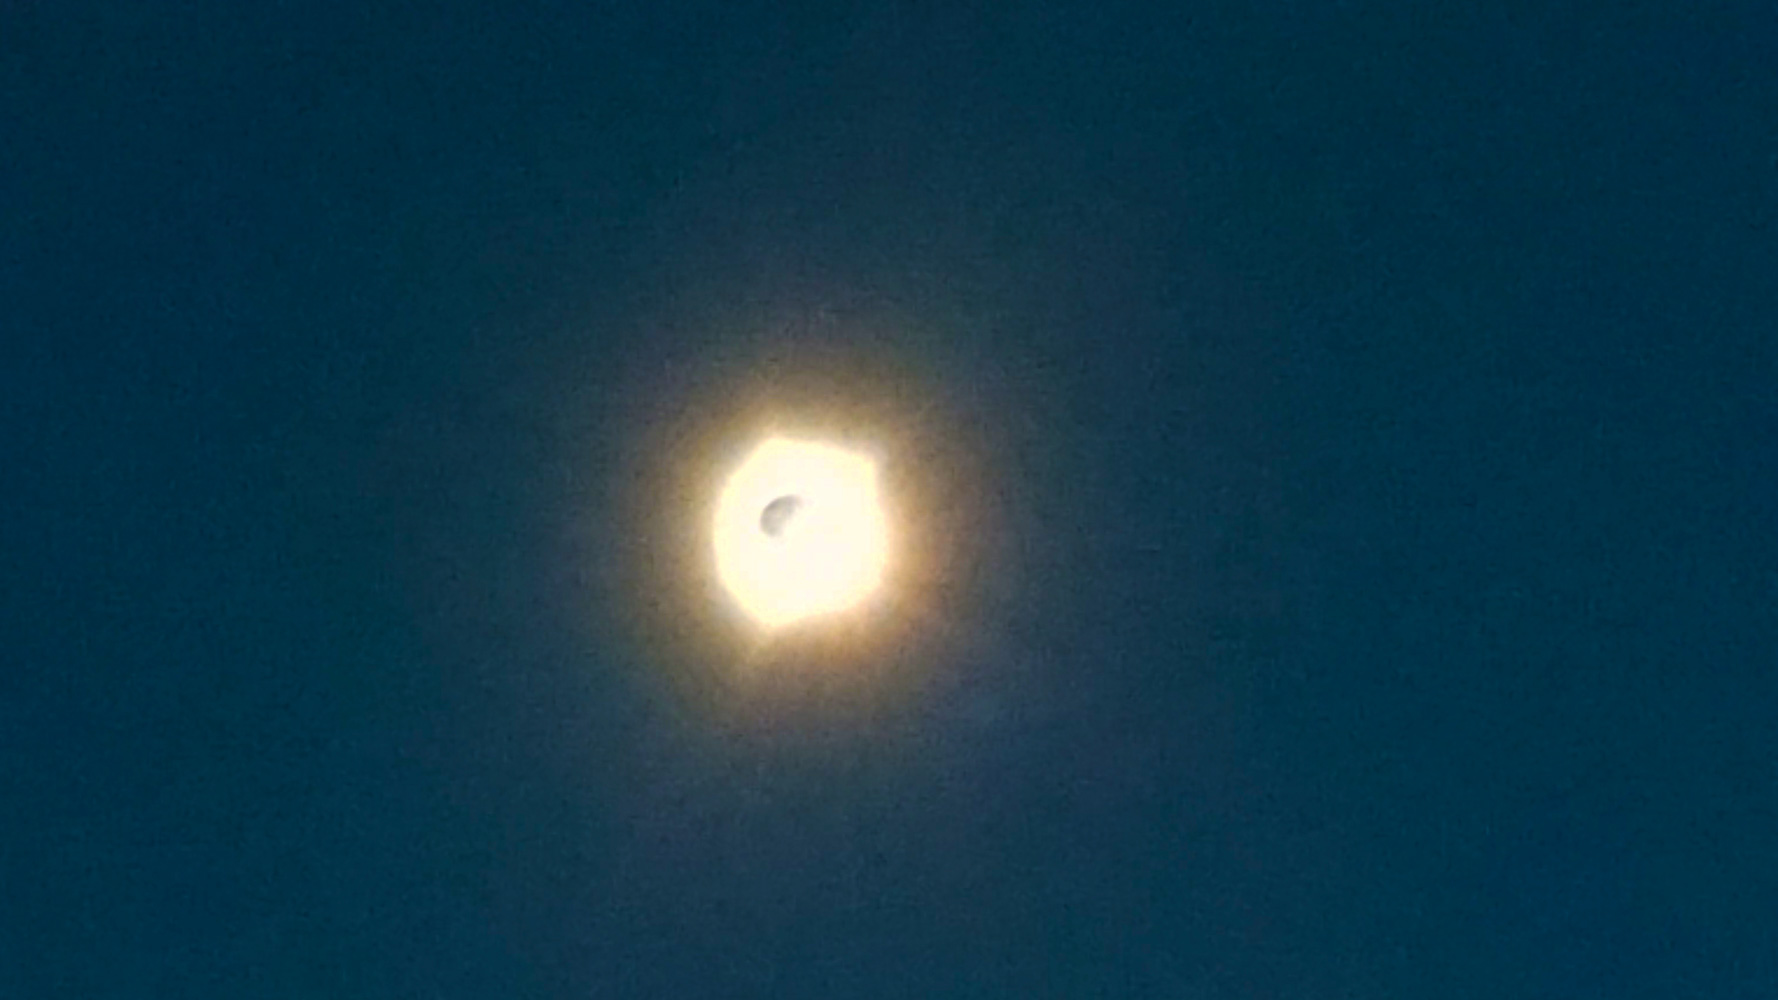 As close as I could get with the cellphone that showed the moons shadow